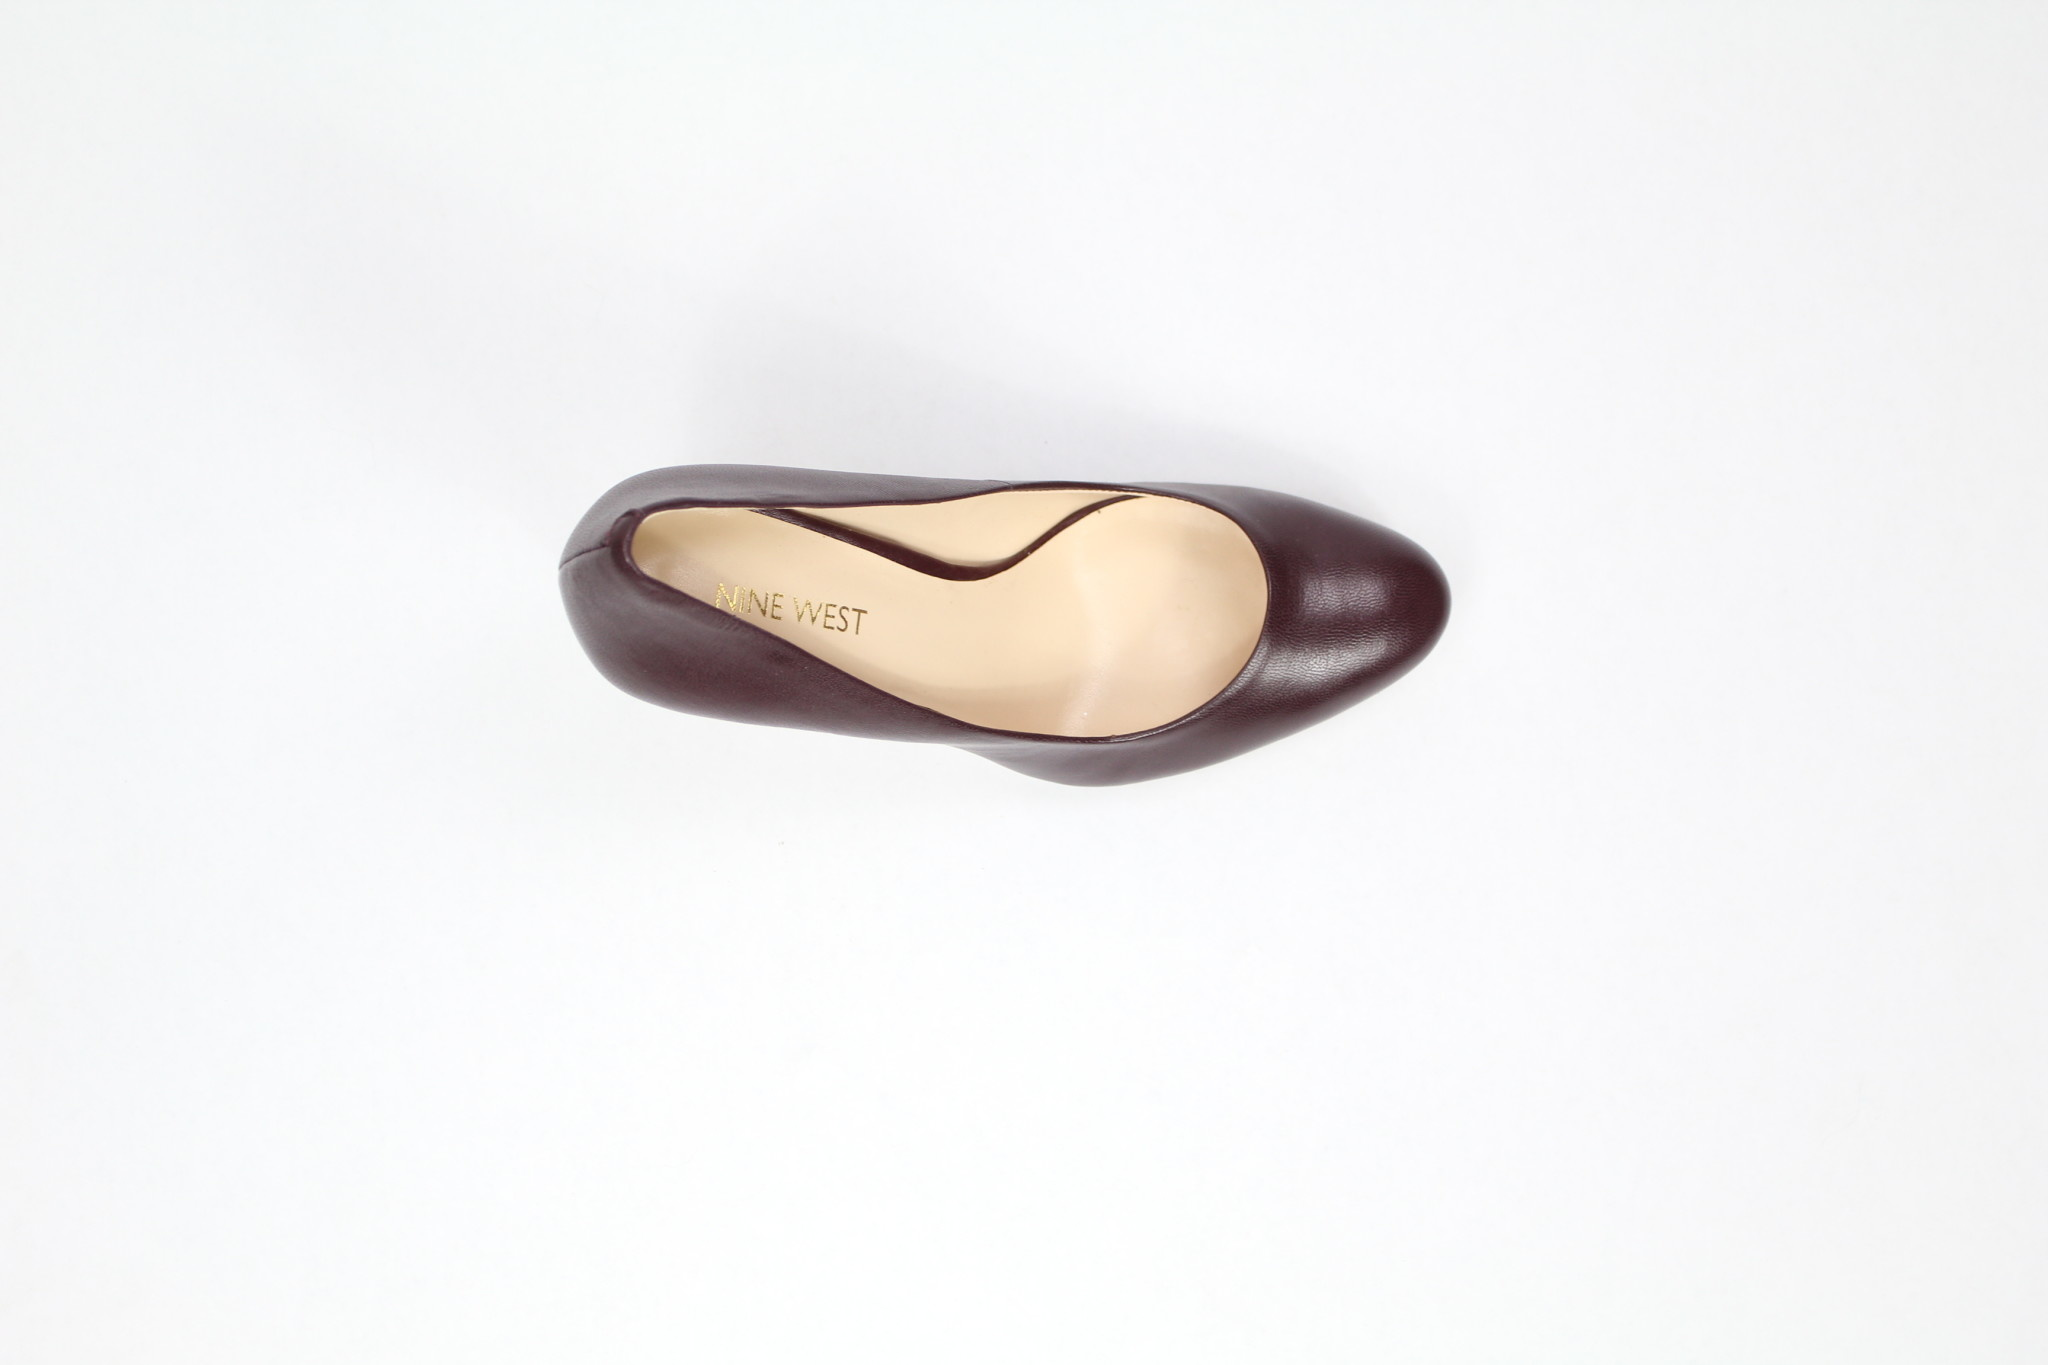 "NINE WEST NINE WEST ""HANDJIVE"" Leather Pump  Reg. $130  Sale $99"